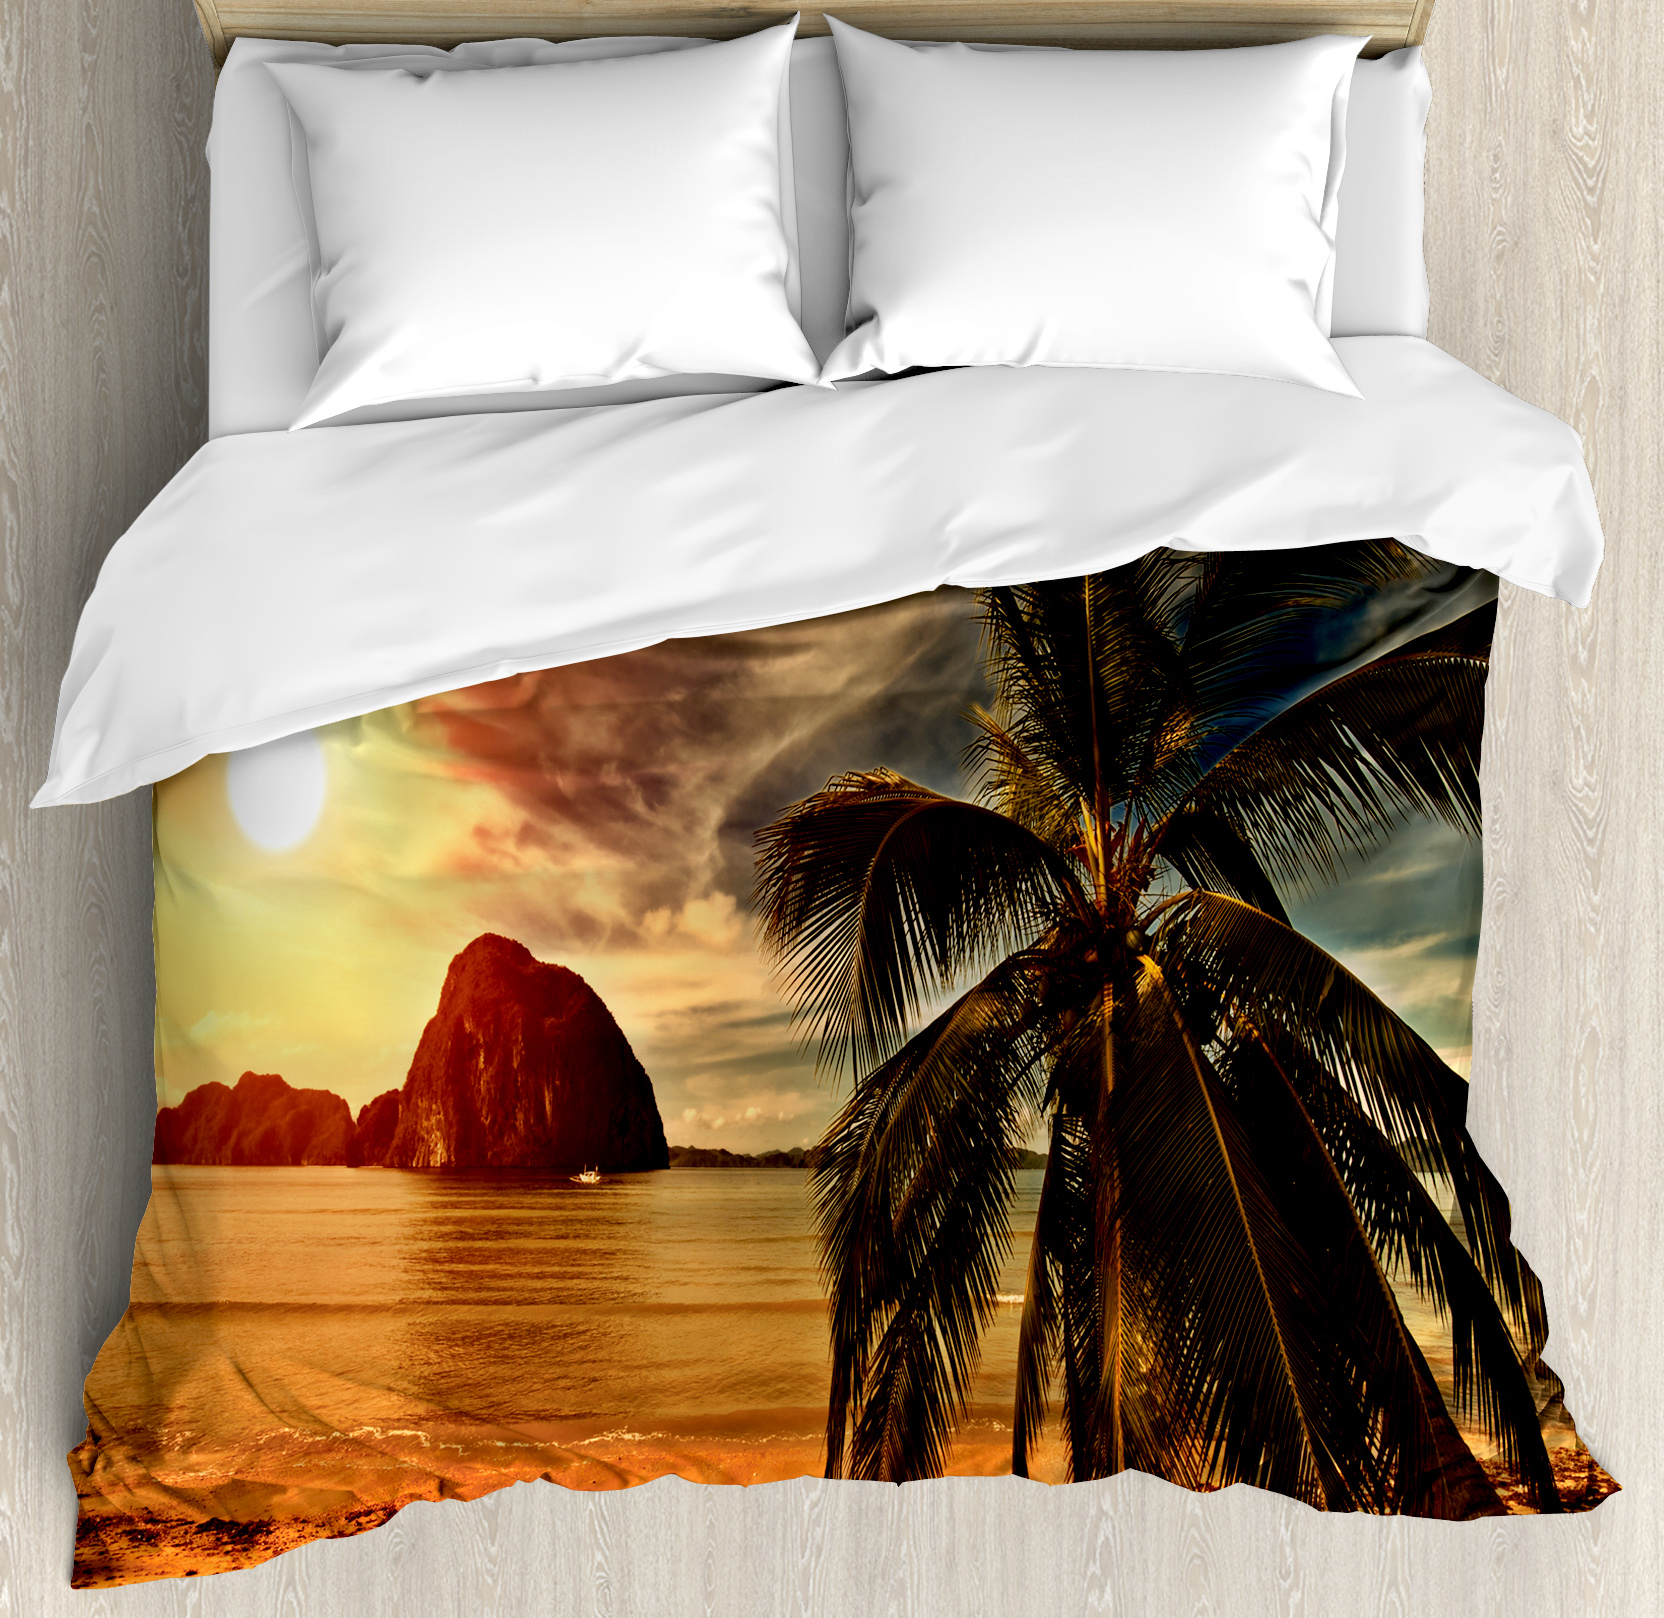 Tropical King Size Duvet Cover Set, Exotic Beach with Coconut Palm Tree and Horizon Sunset Calm Panorama, Decorative 3 Piece Bedding Set with 2 Pillow Shams, Orange and Olive Green, by Ambesonne